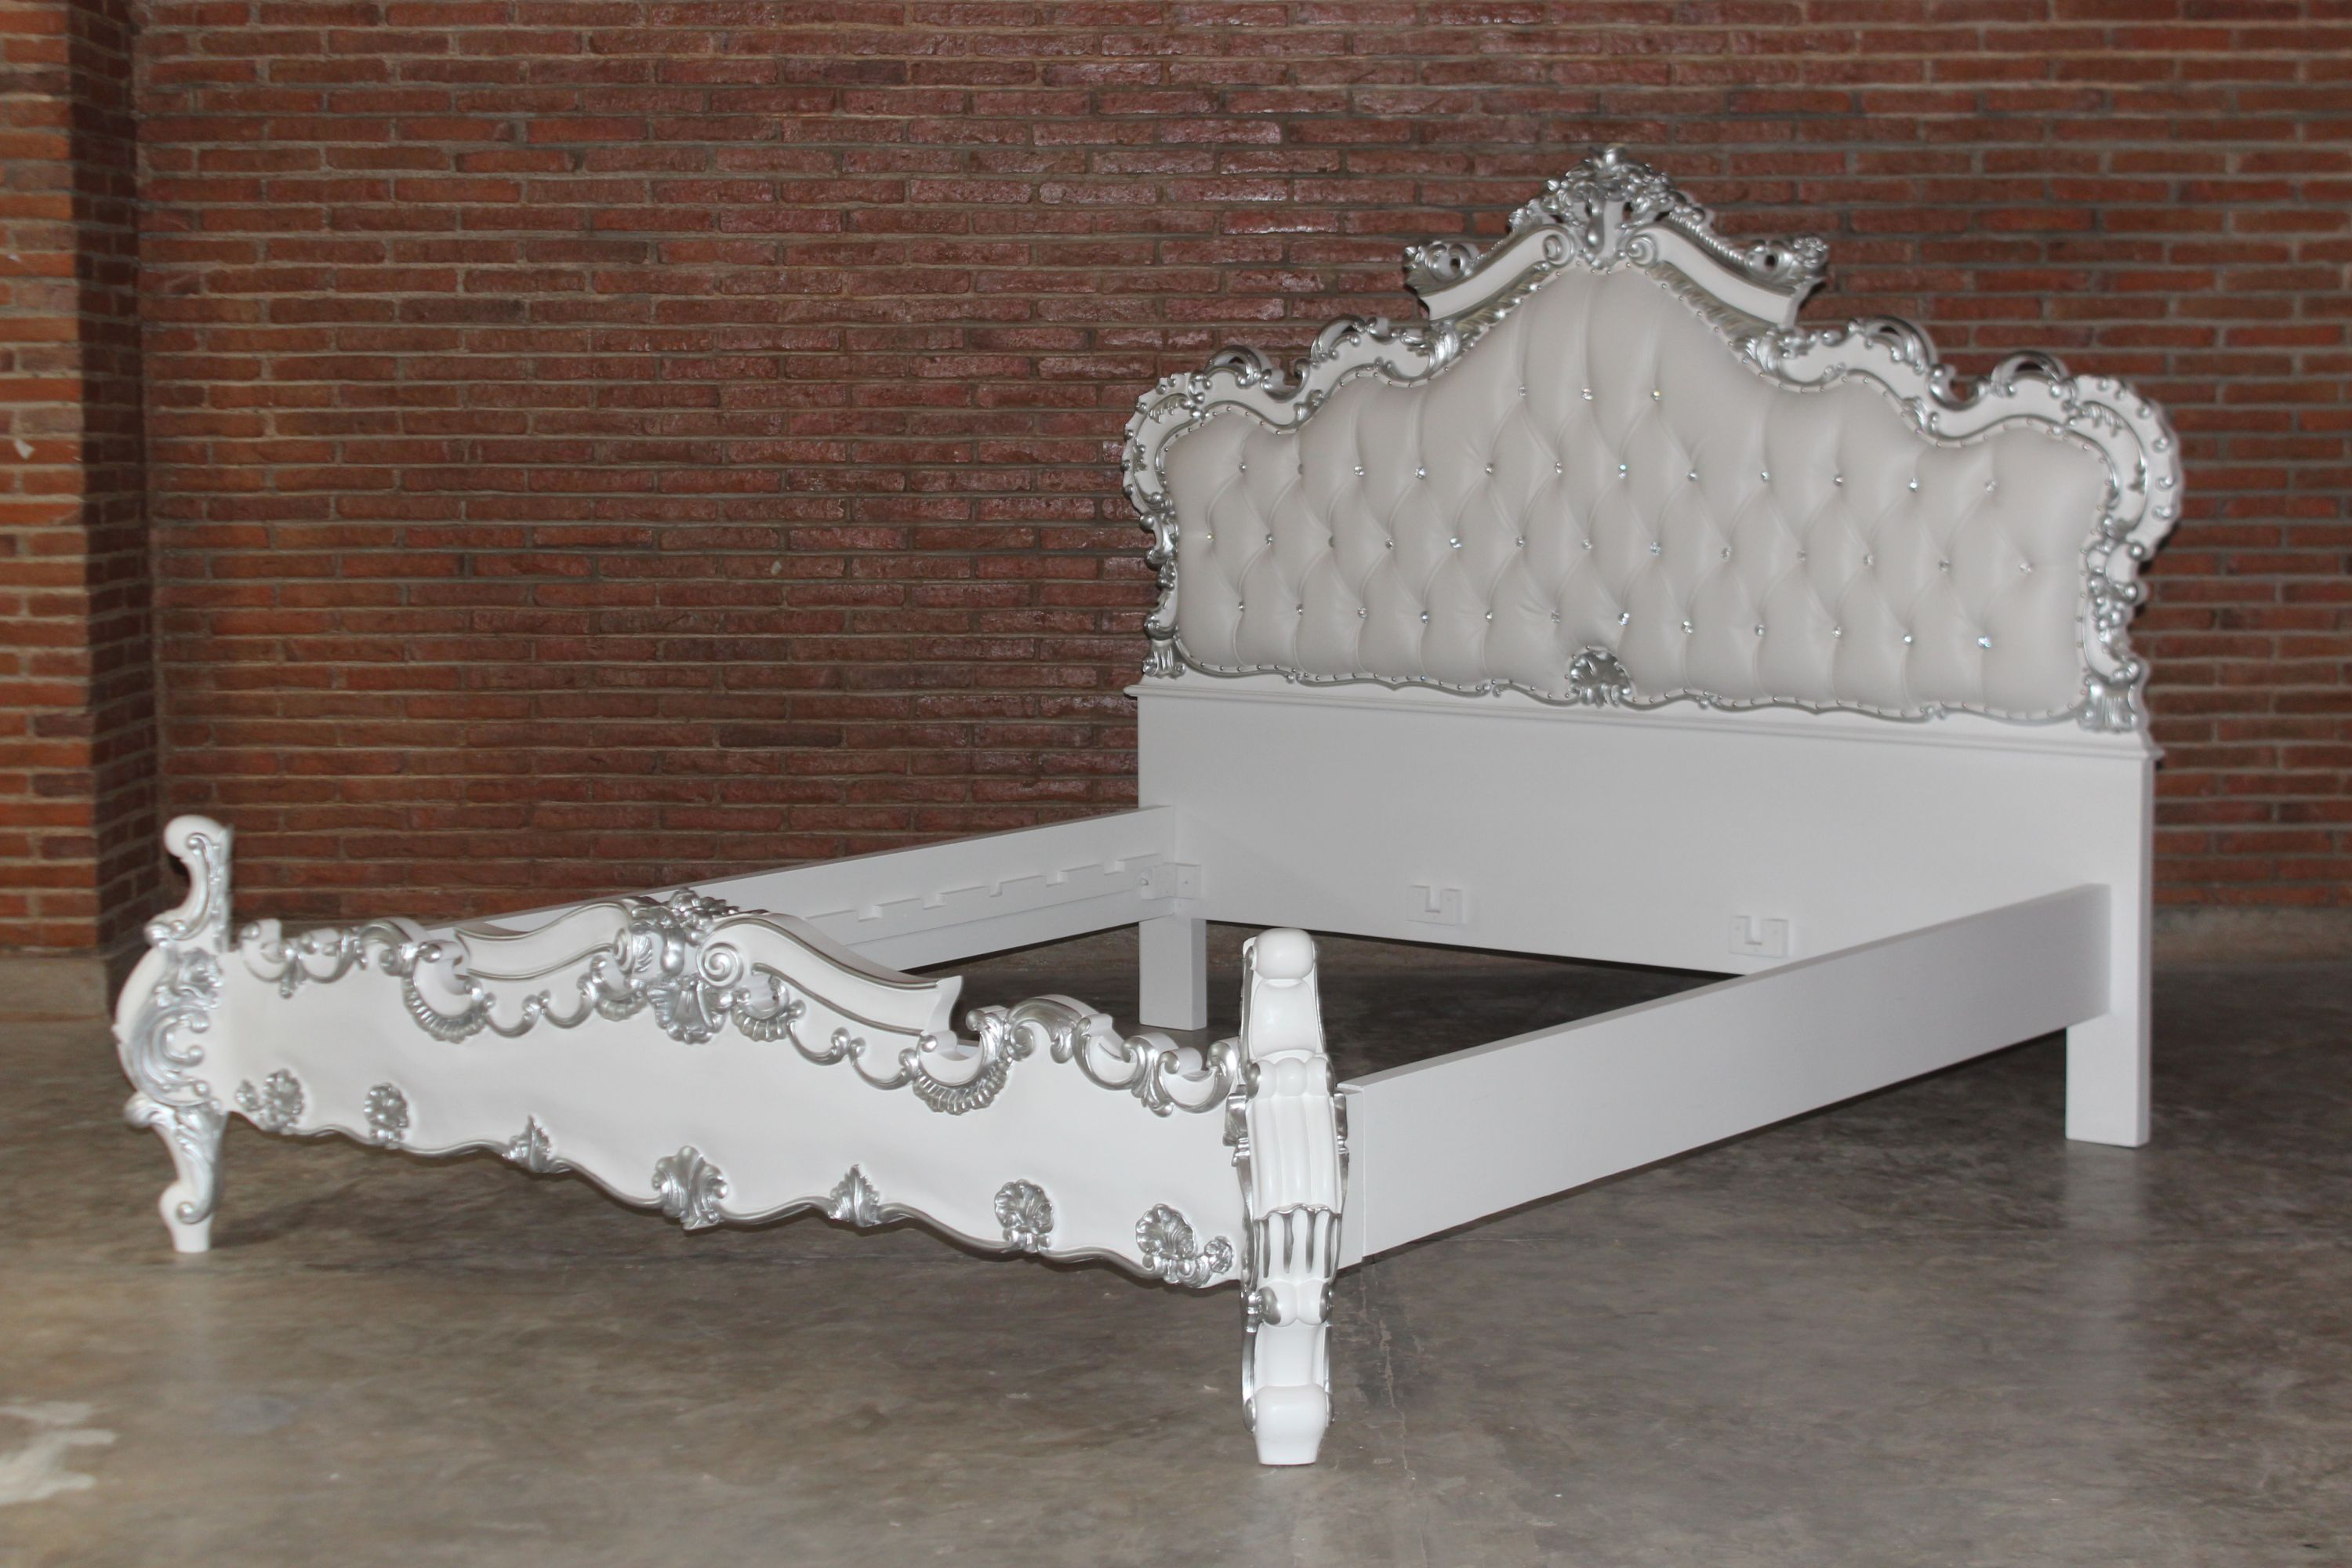 Barock Bett Grace Betten Onlineshop Repro Antik Design